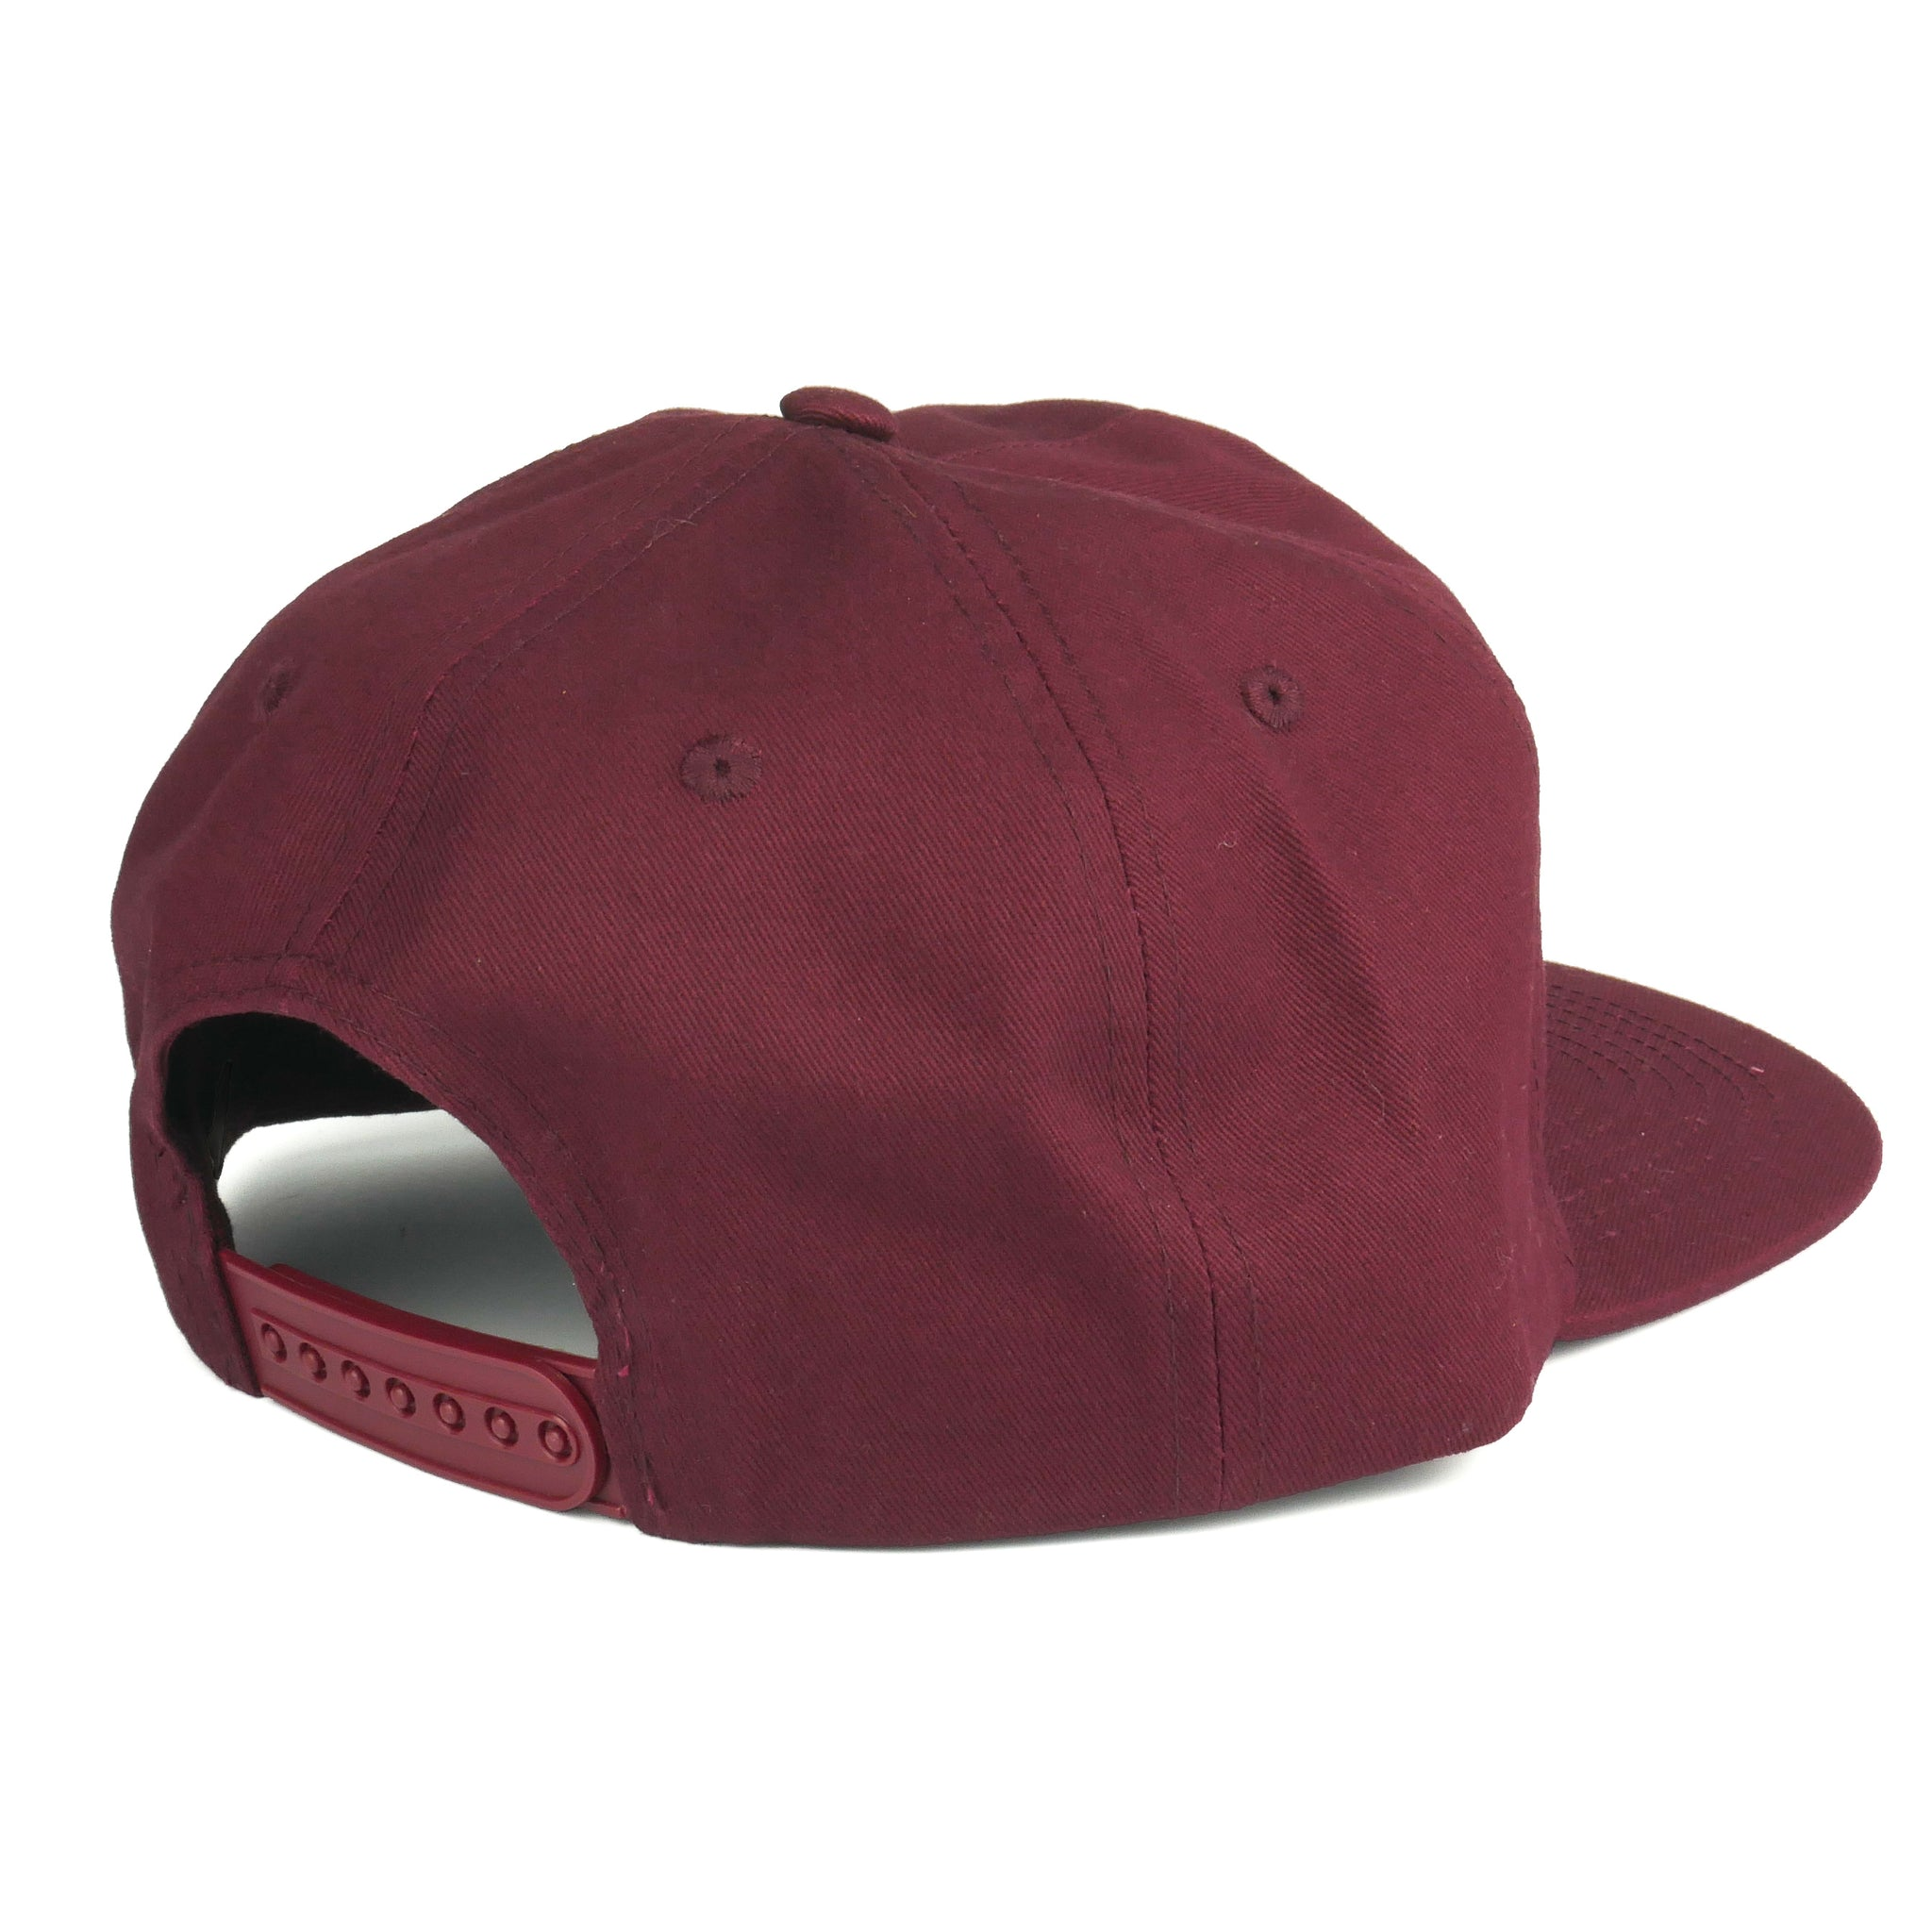 The High 5 - 100% Cotton - Burgundy